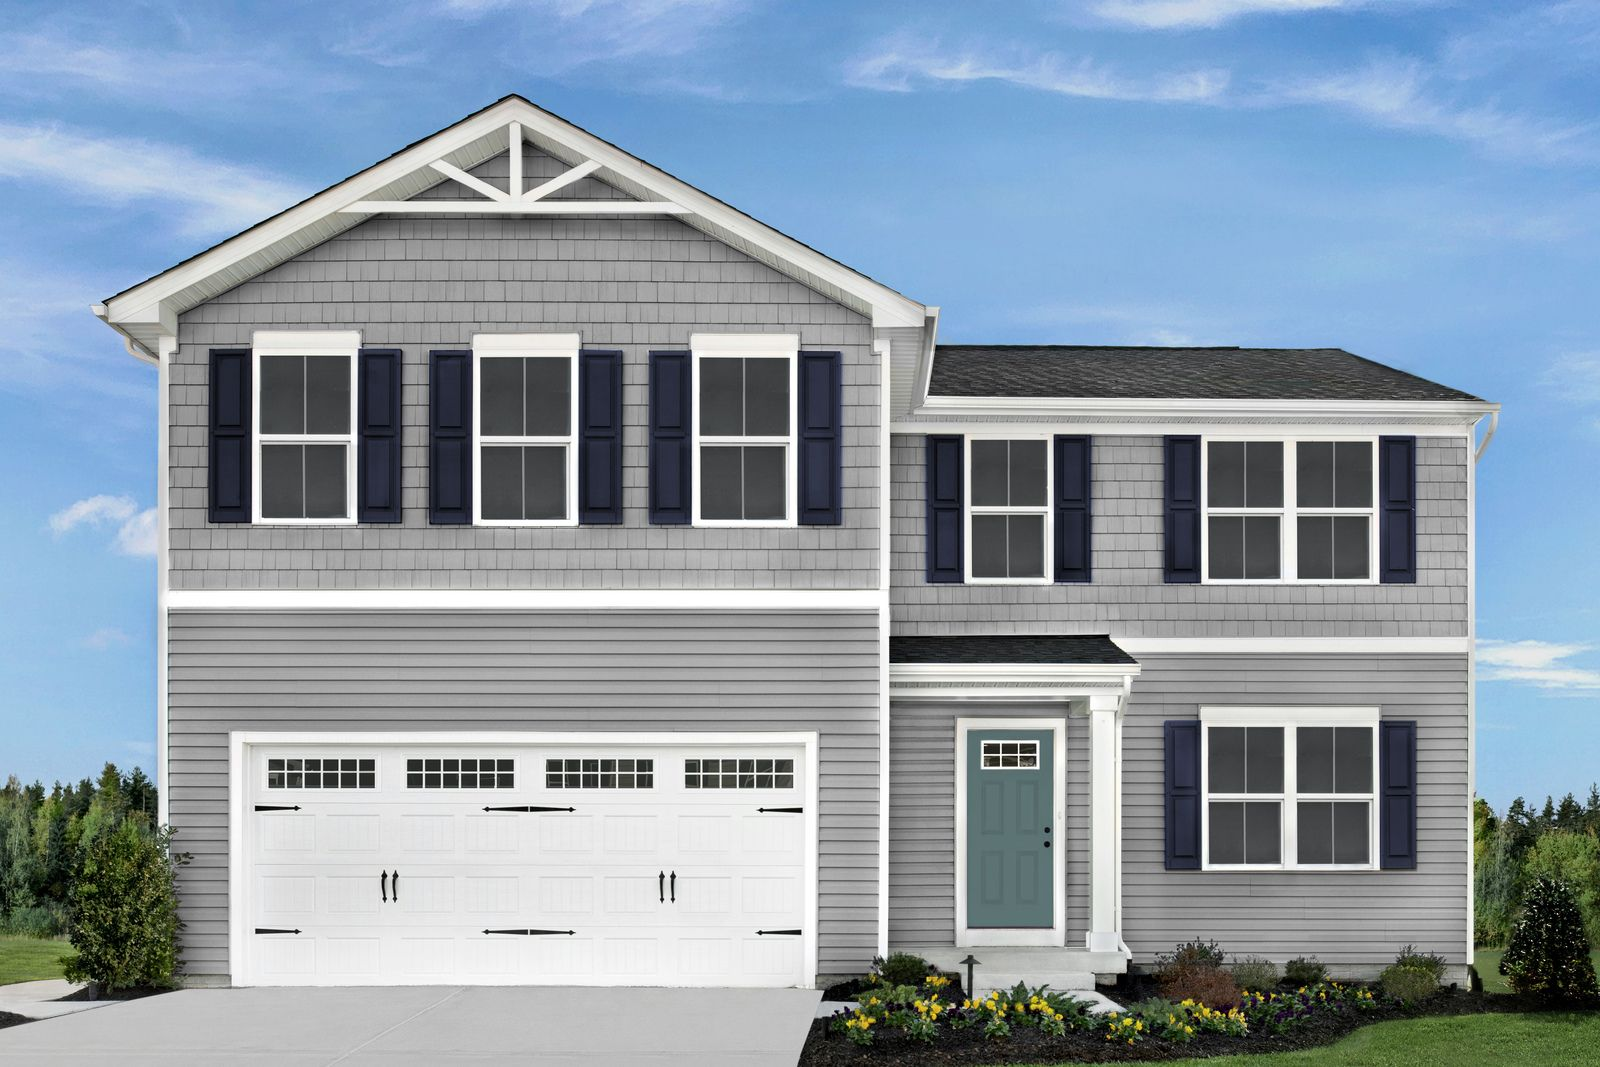 NOW SELLING! Modern Homes with Appliances Included Minutes from I-20 and I-26:With Lexington 1 Schools, offering 0% down financing options. Schedule a visit today!